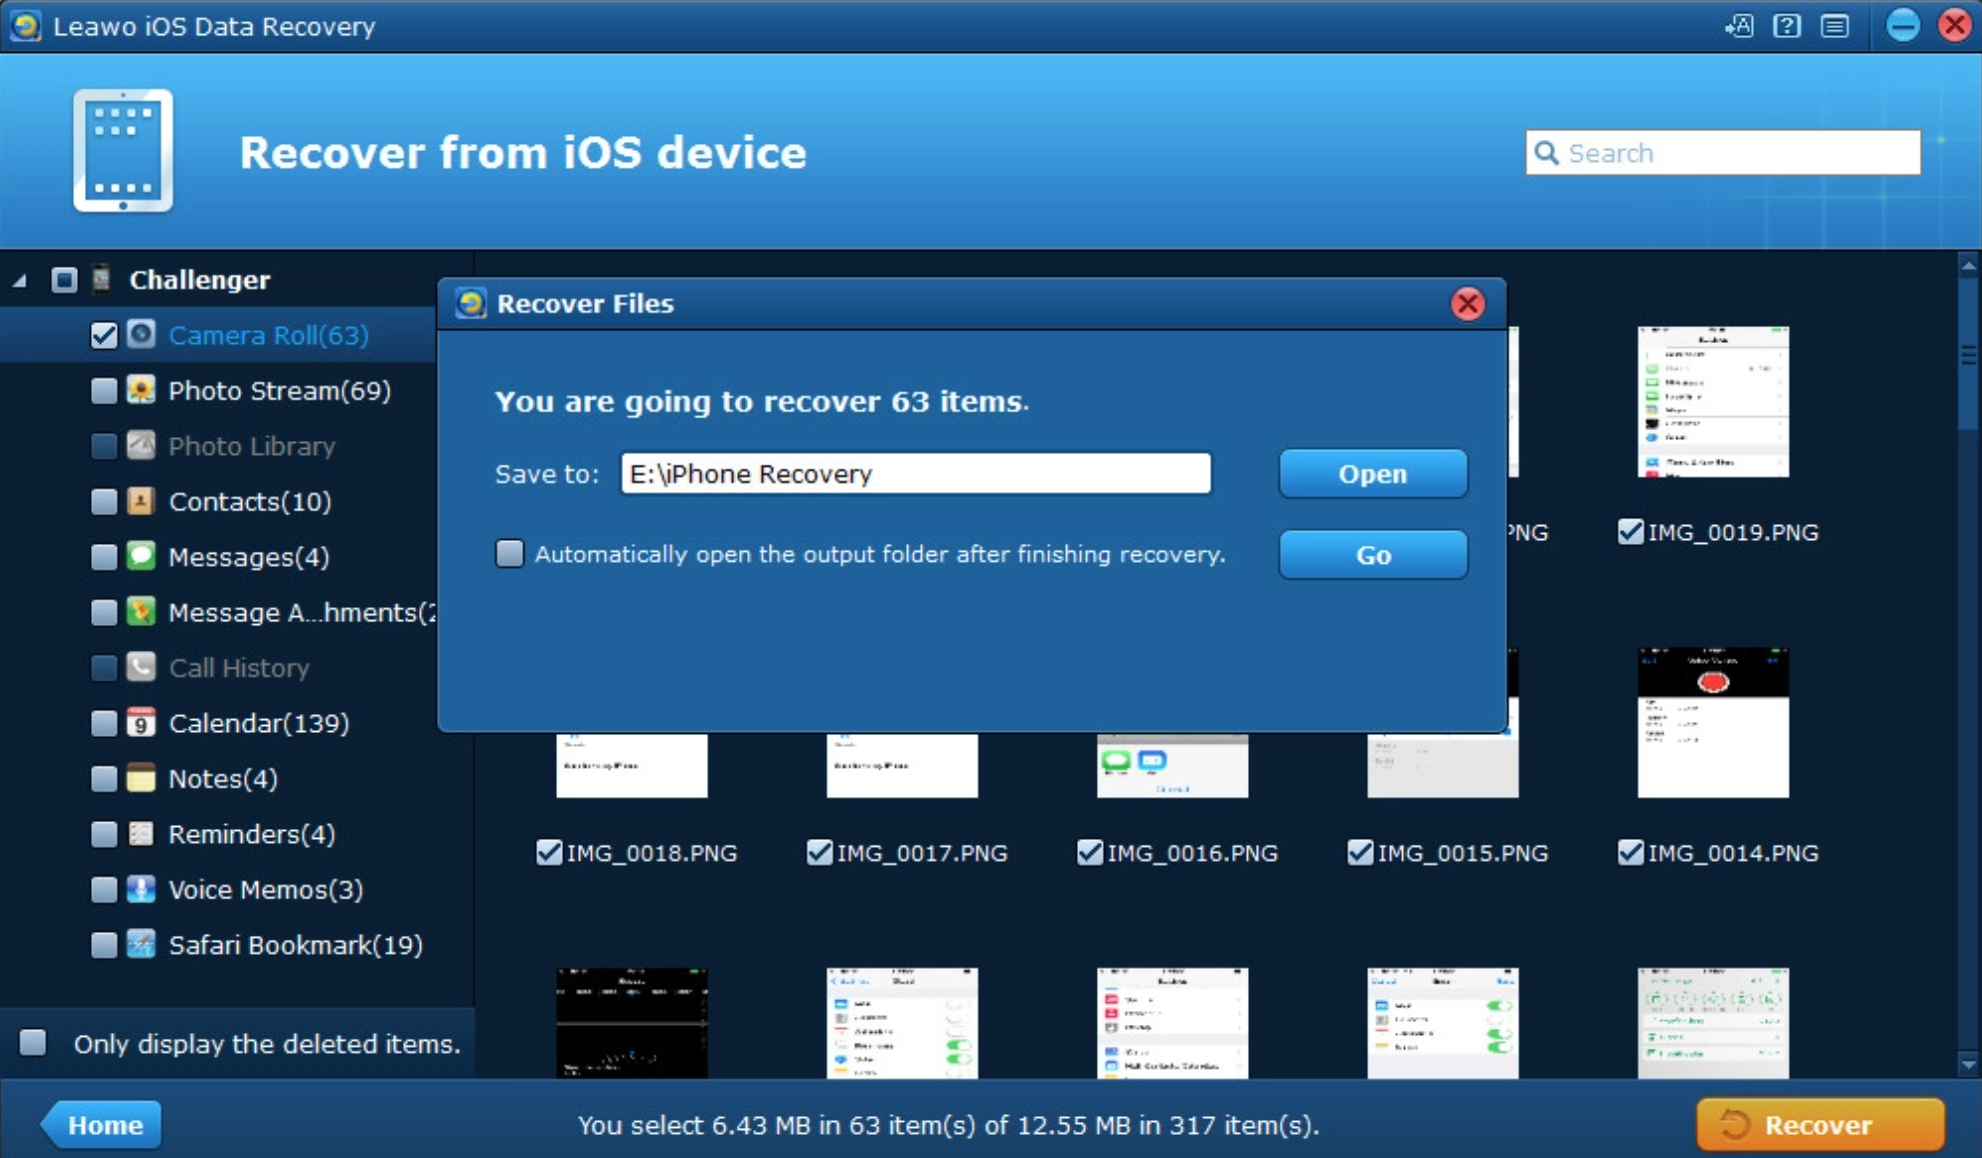 recover-deleted-photos-on-iPad-without-backup 04